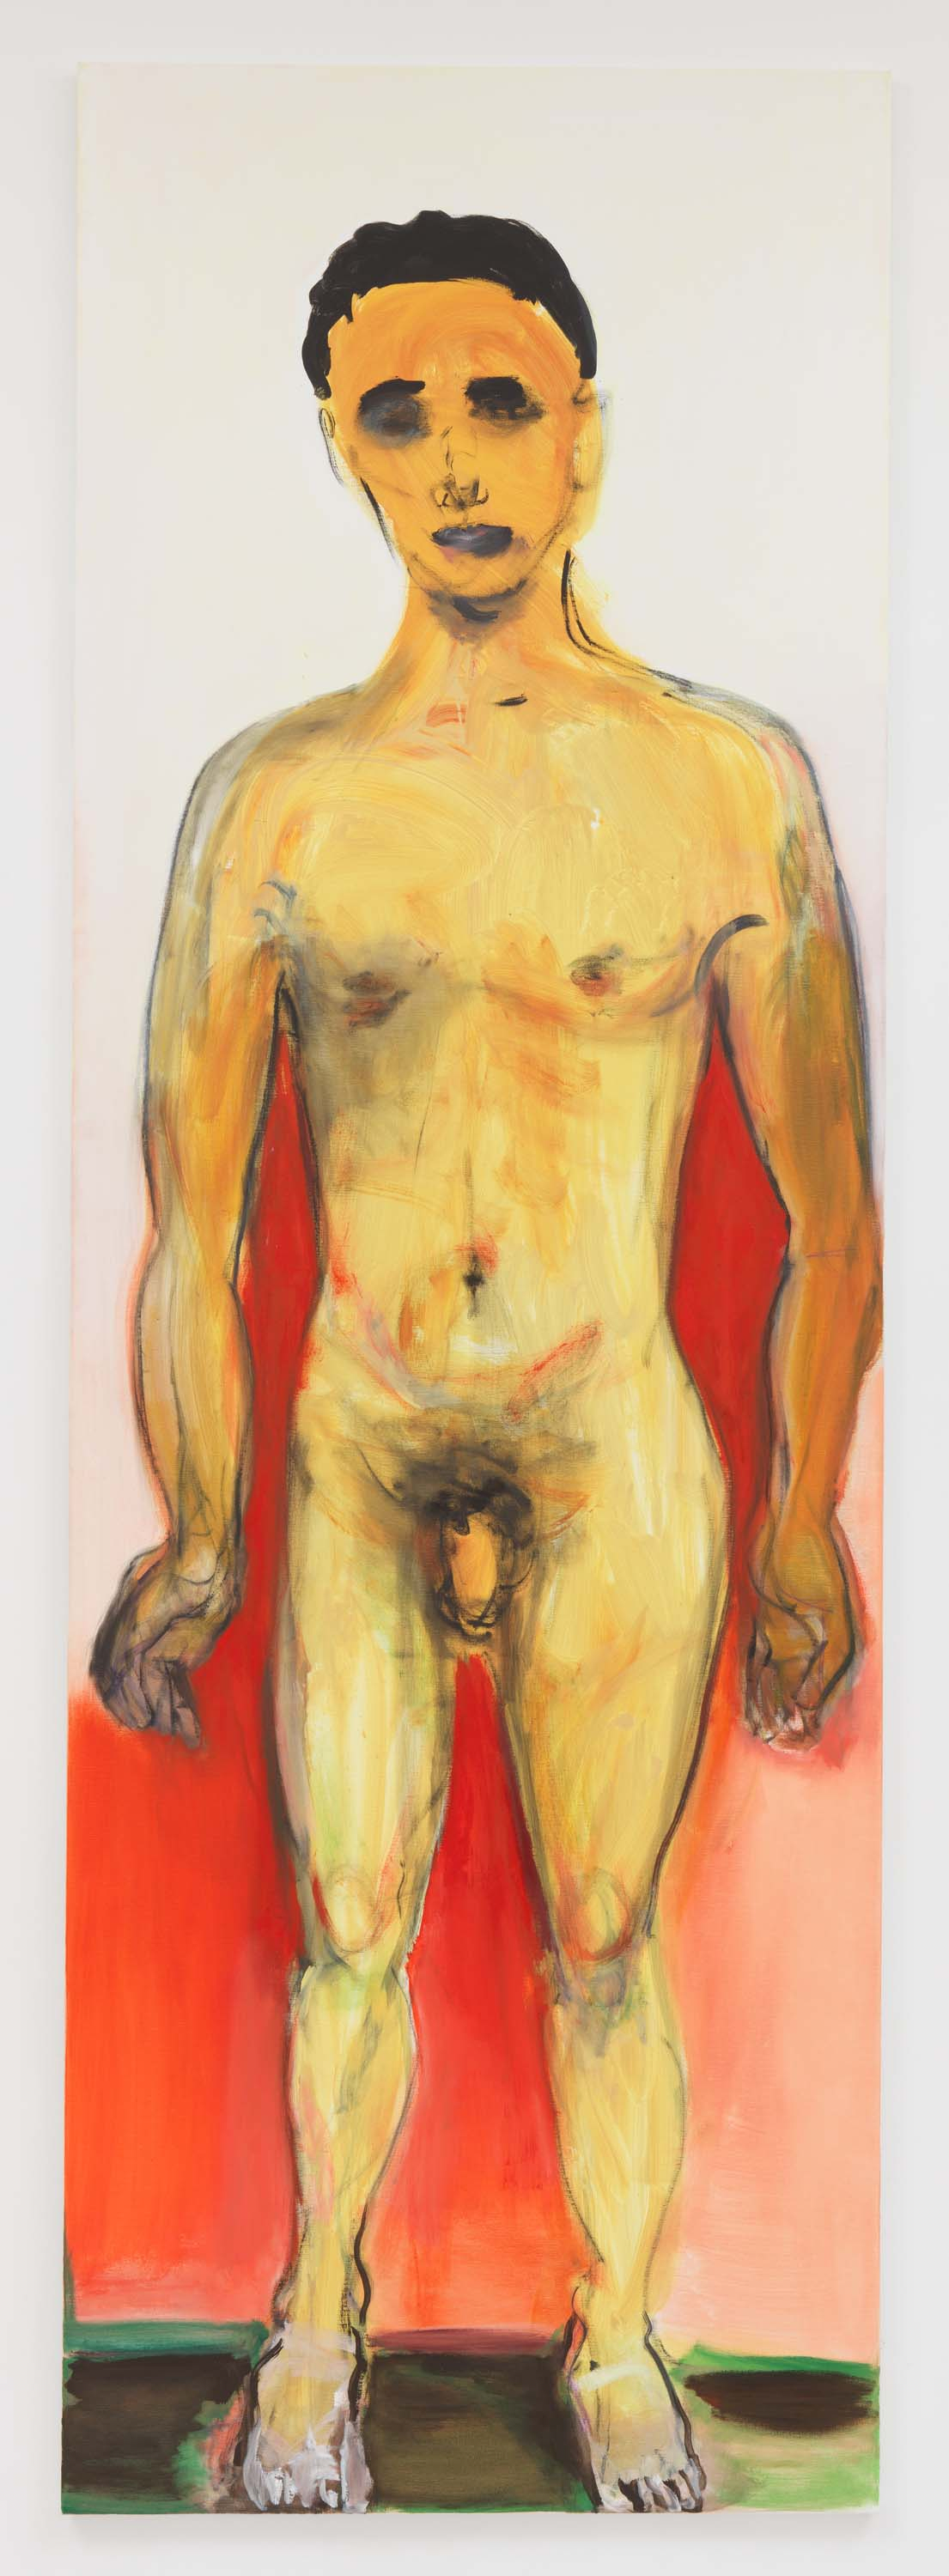 "Marlene Dumas, 2017, Oil on canvas, 118 1/8 x 39 3/8 inches 300 x 100 cm. Exposition ""Myths & Mortals"", Galerie David Zwirner, New-York"